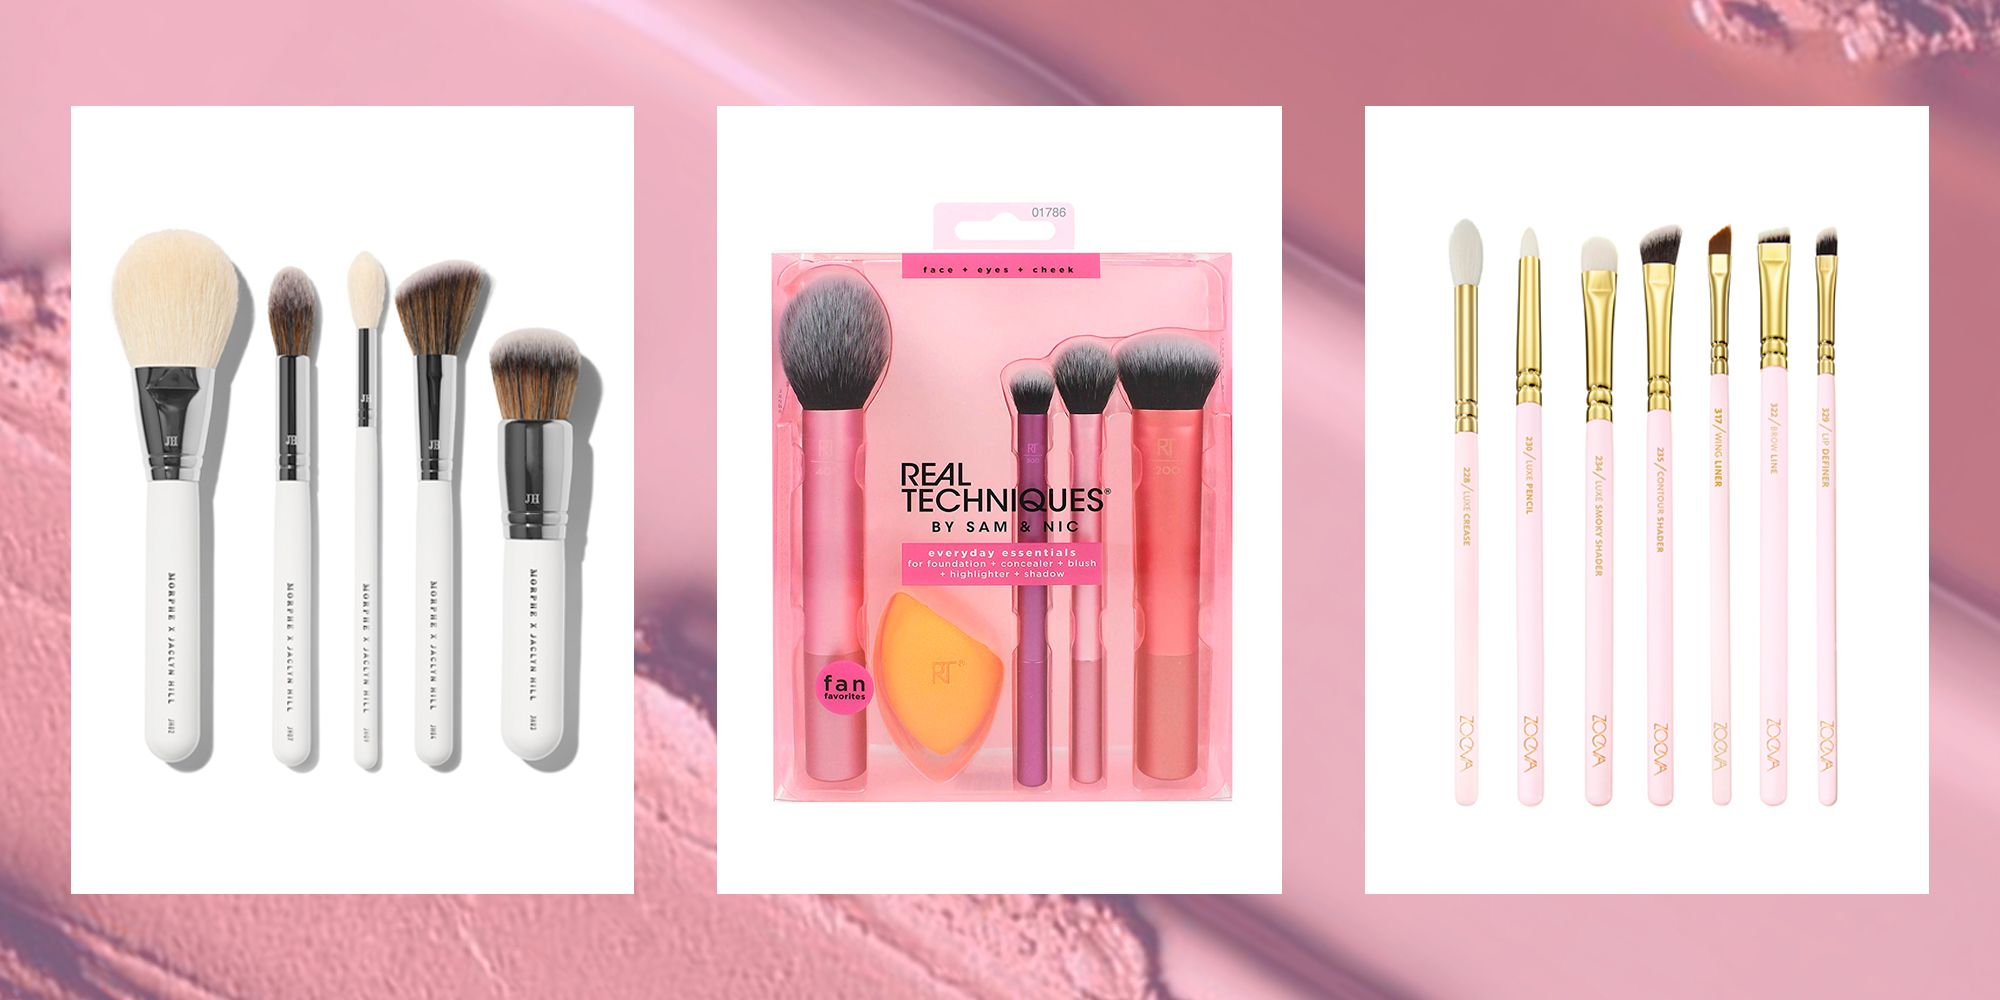 Best Makeup Brushes 2020 - 8 Sets Our